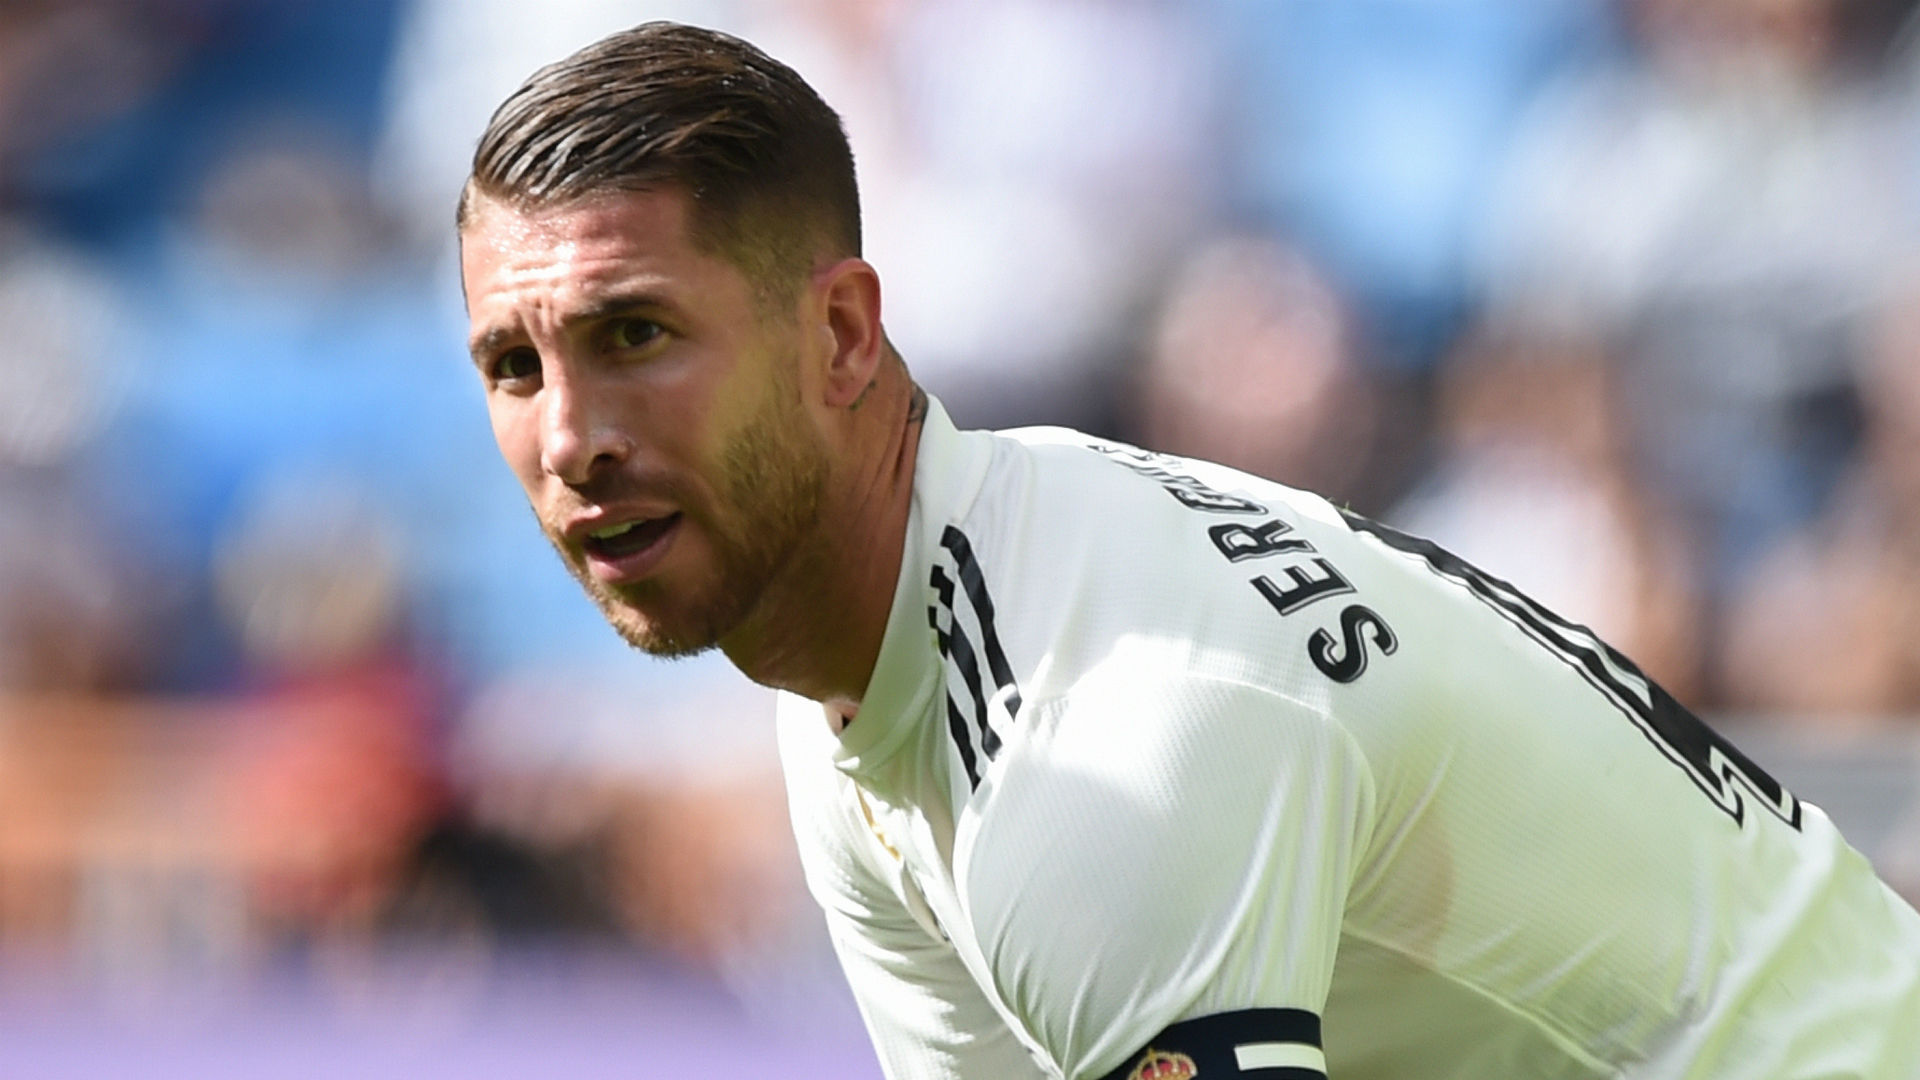 Sergio Ramos responds to Dejan Lovren's recent jibes